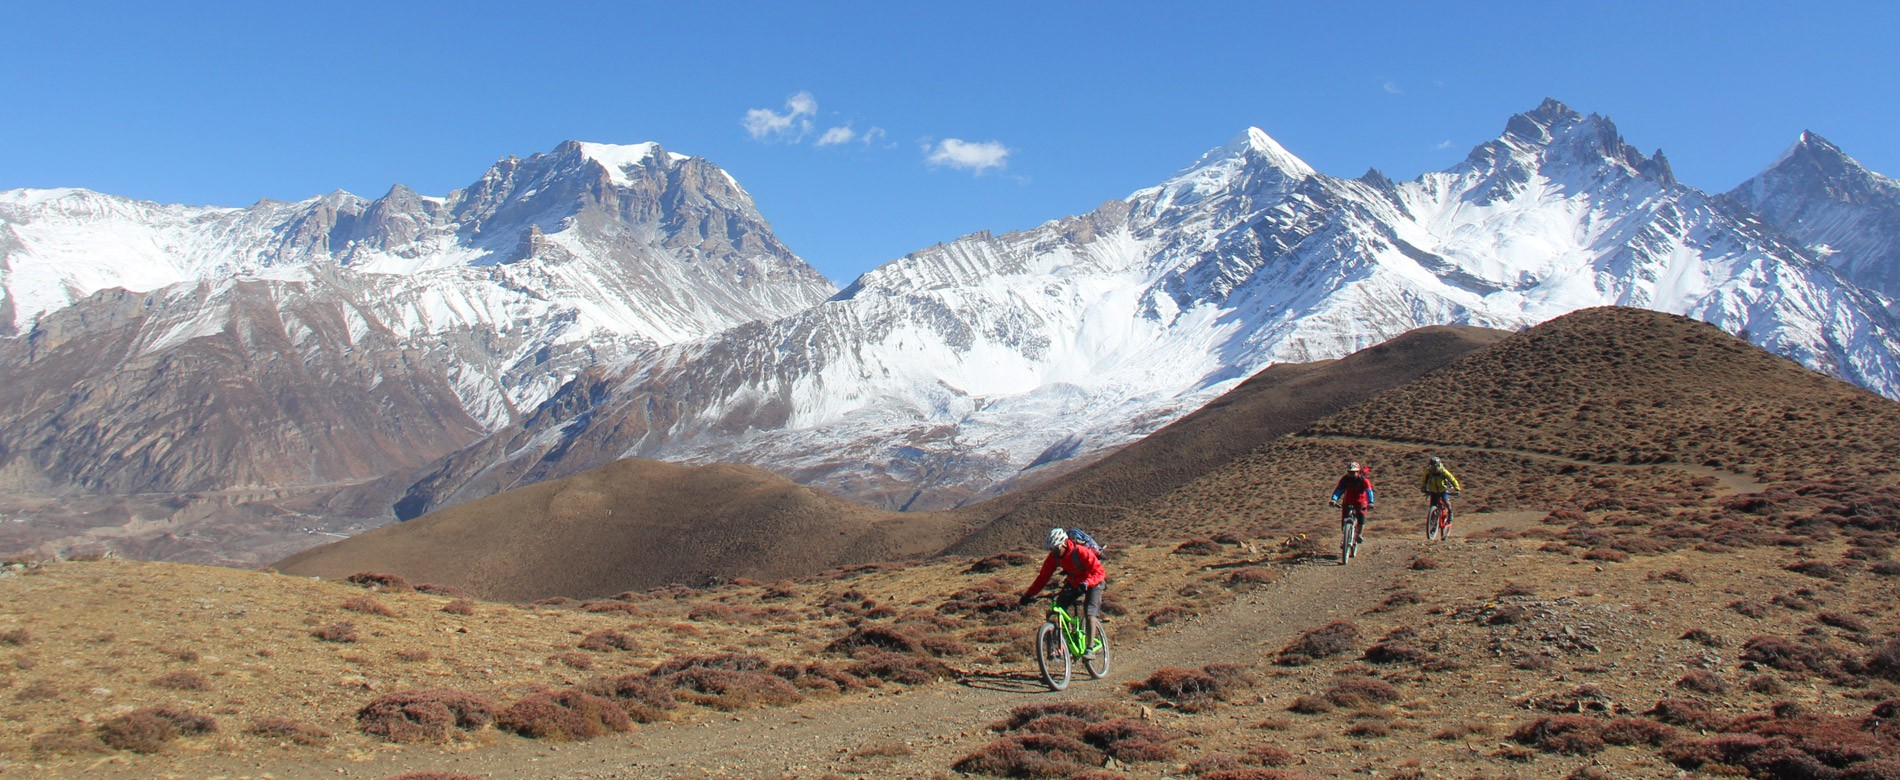 mountain biking himalayas